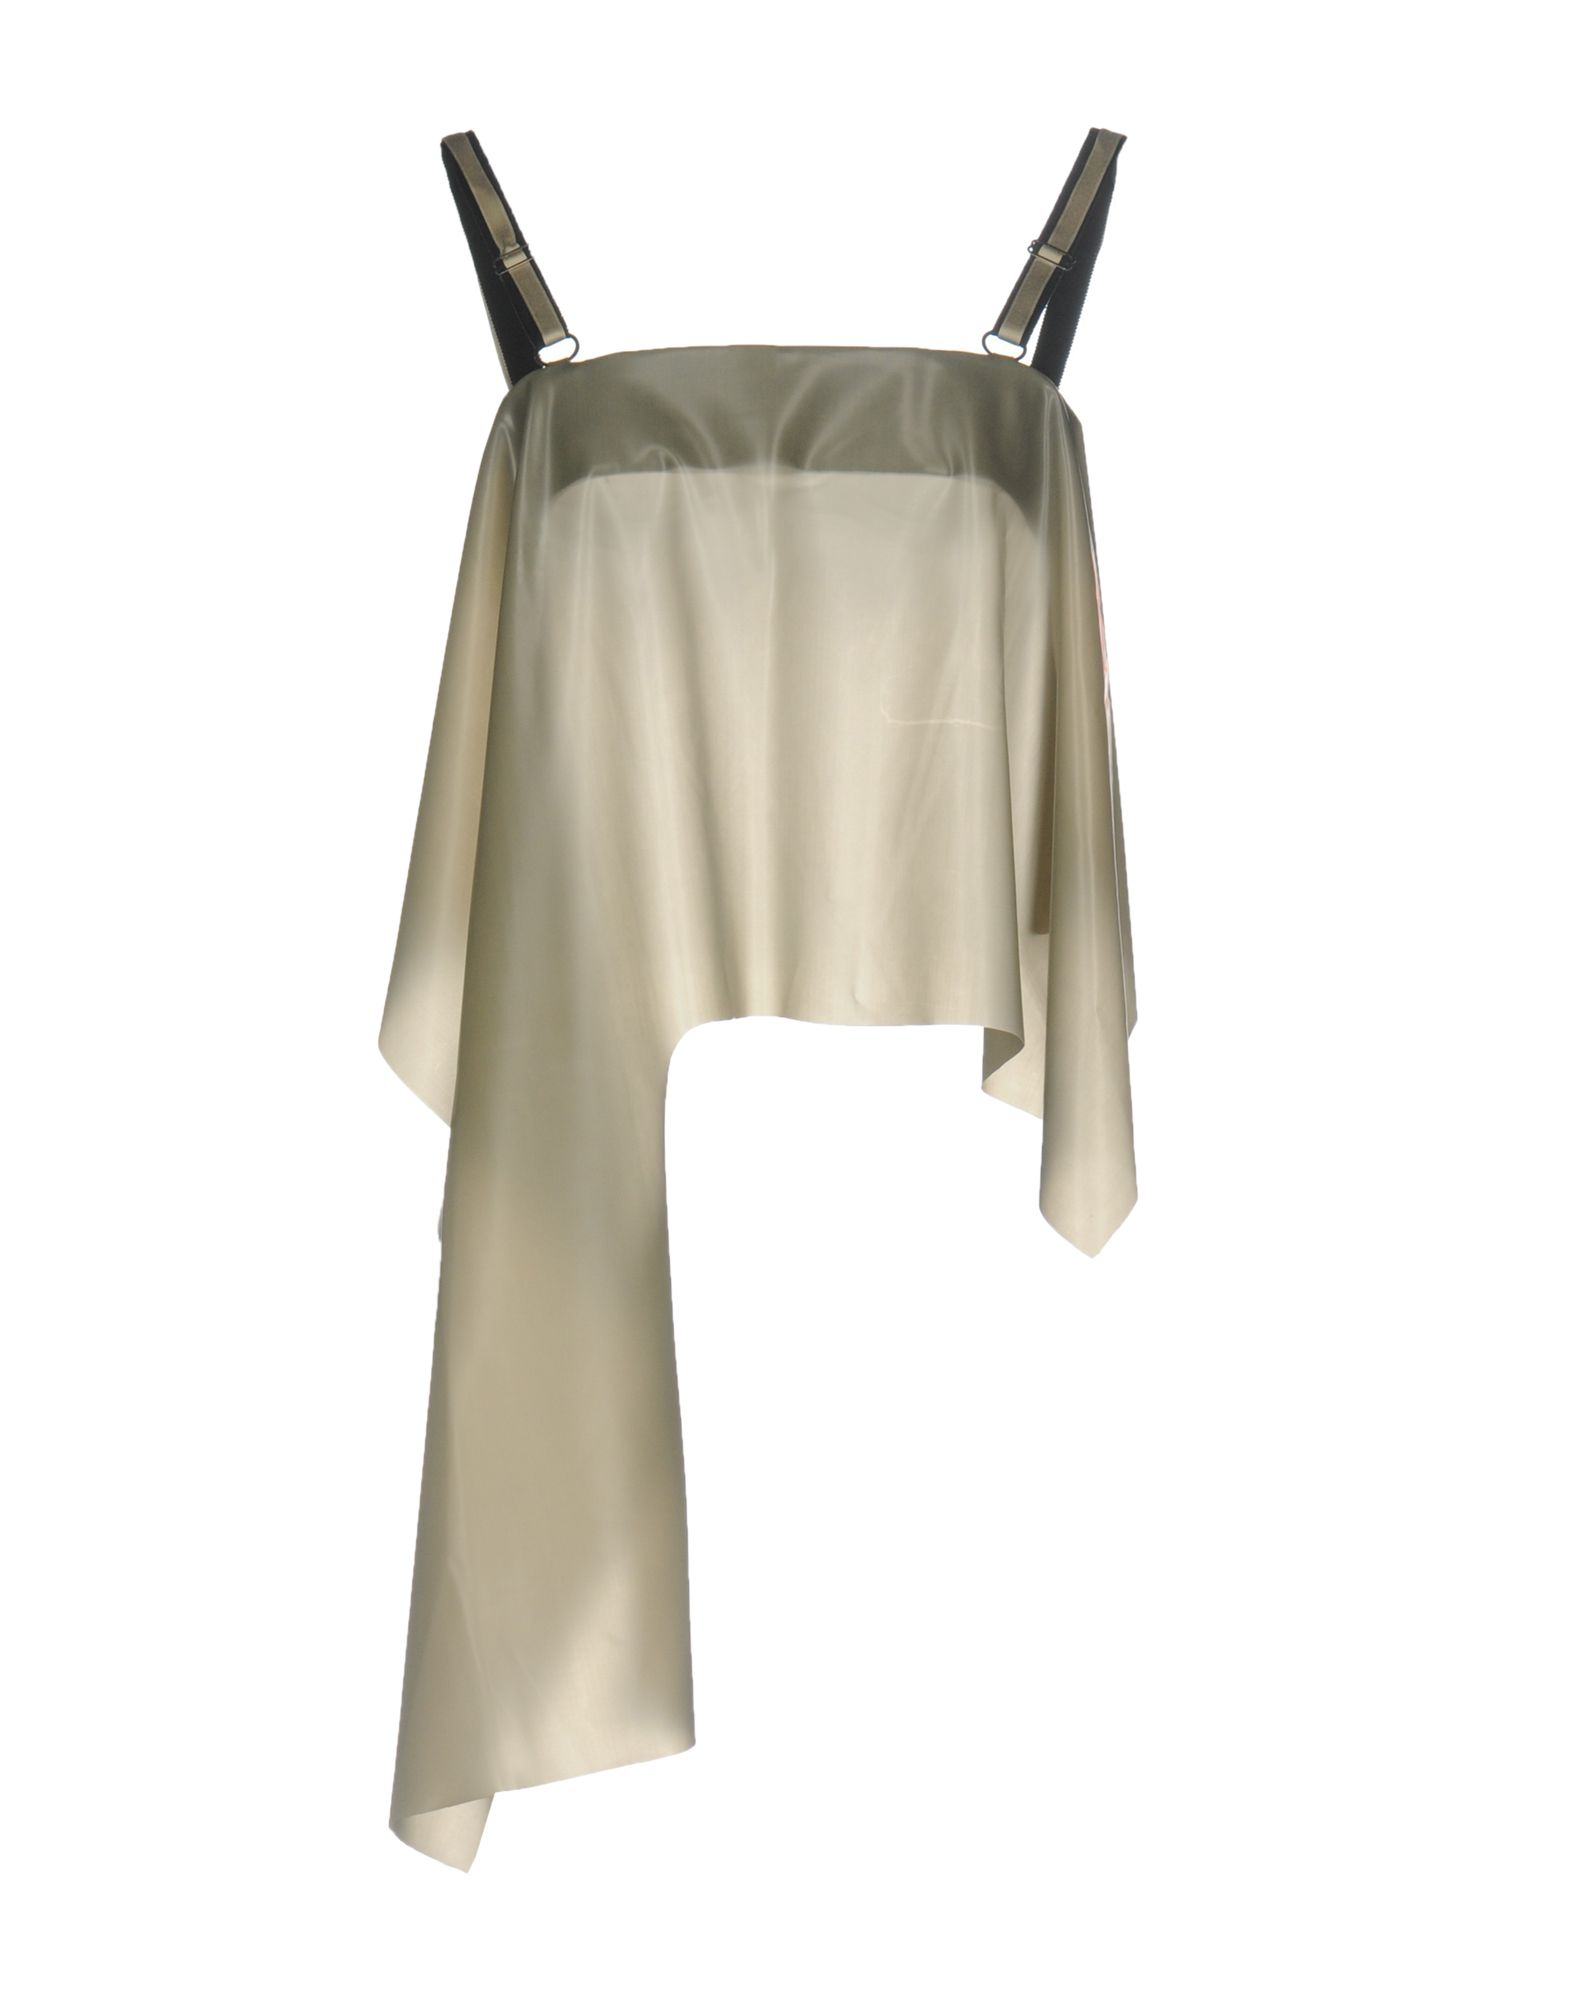 ANNE SOFIE MADSEN Top in Military Green